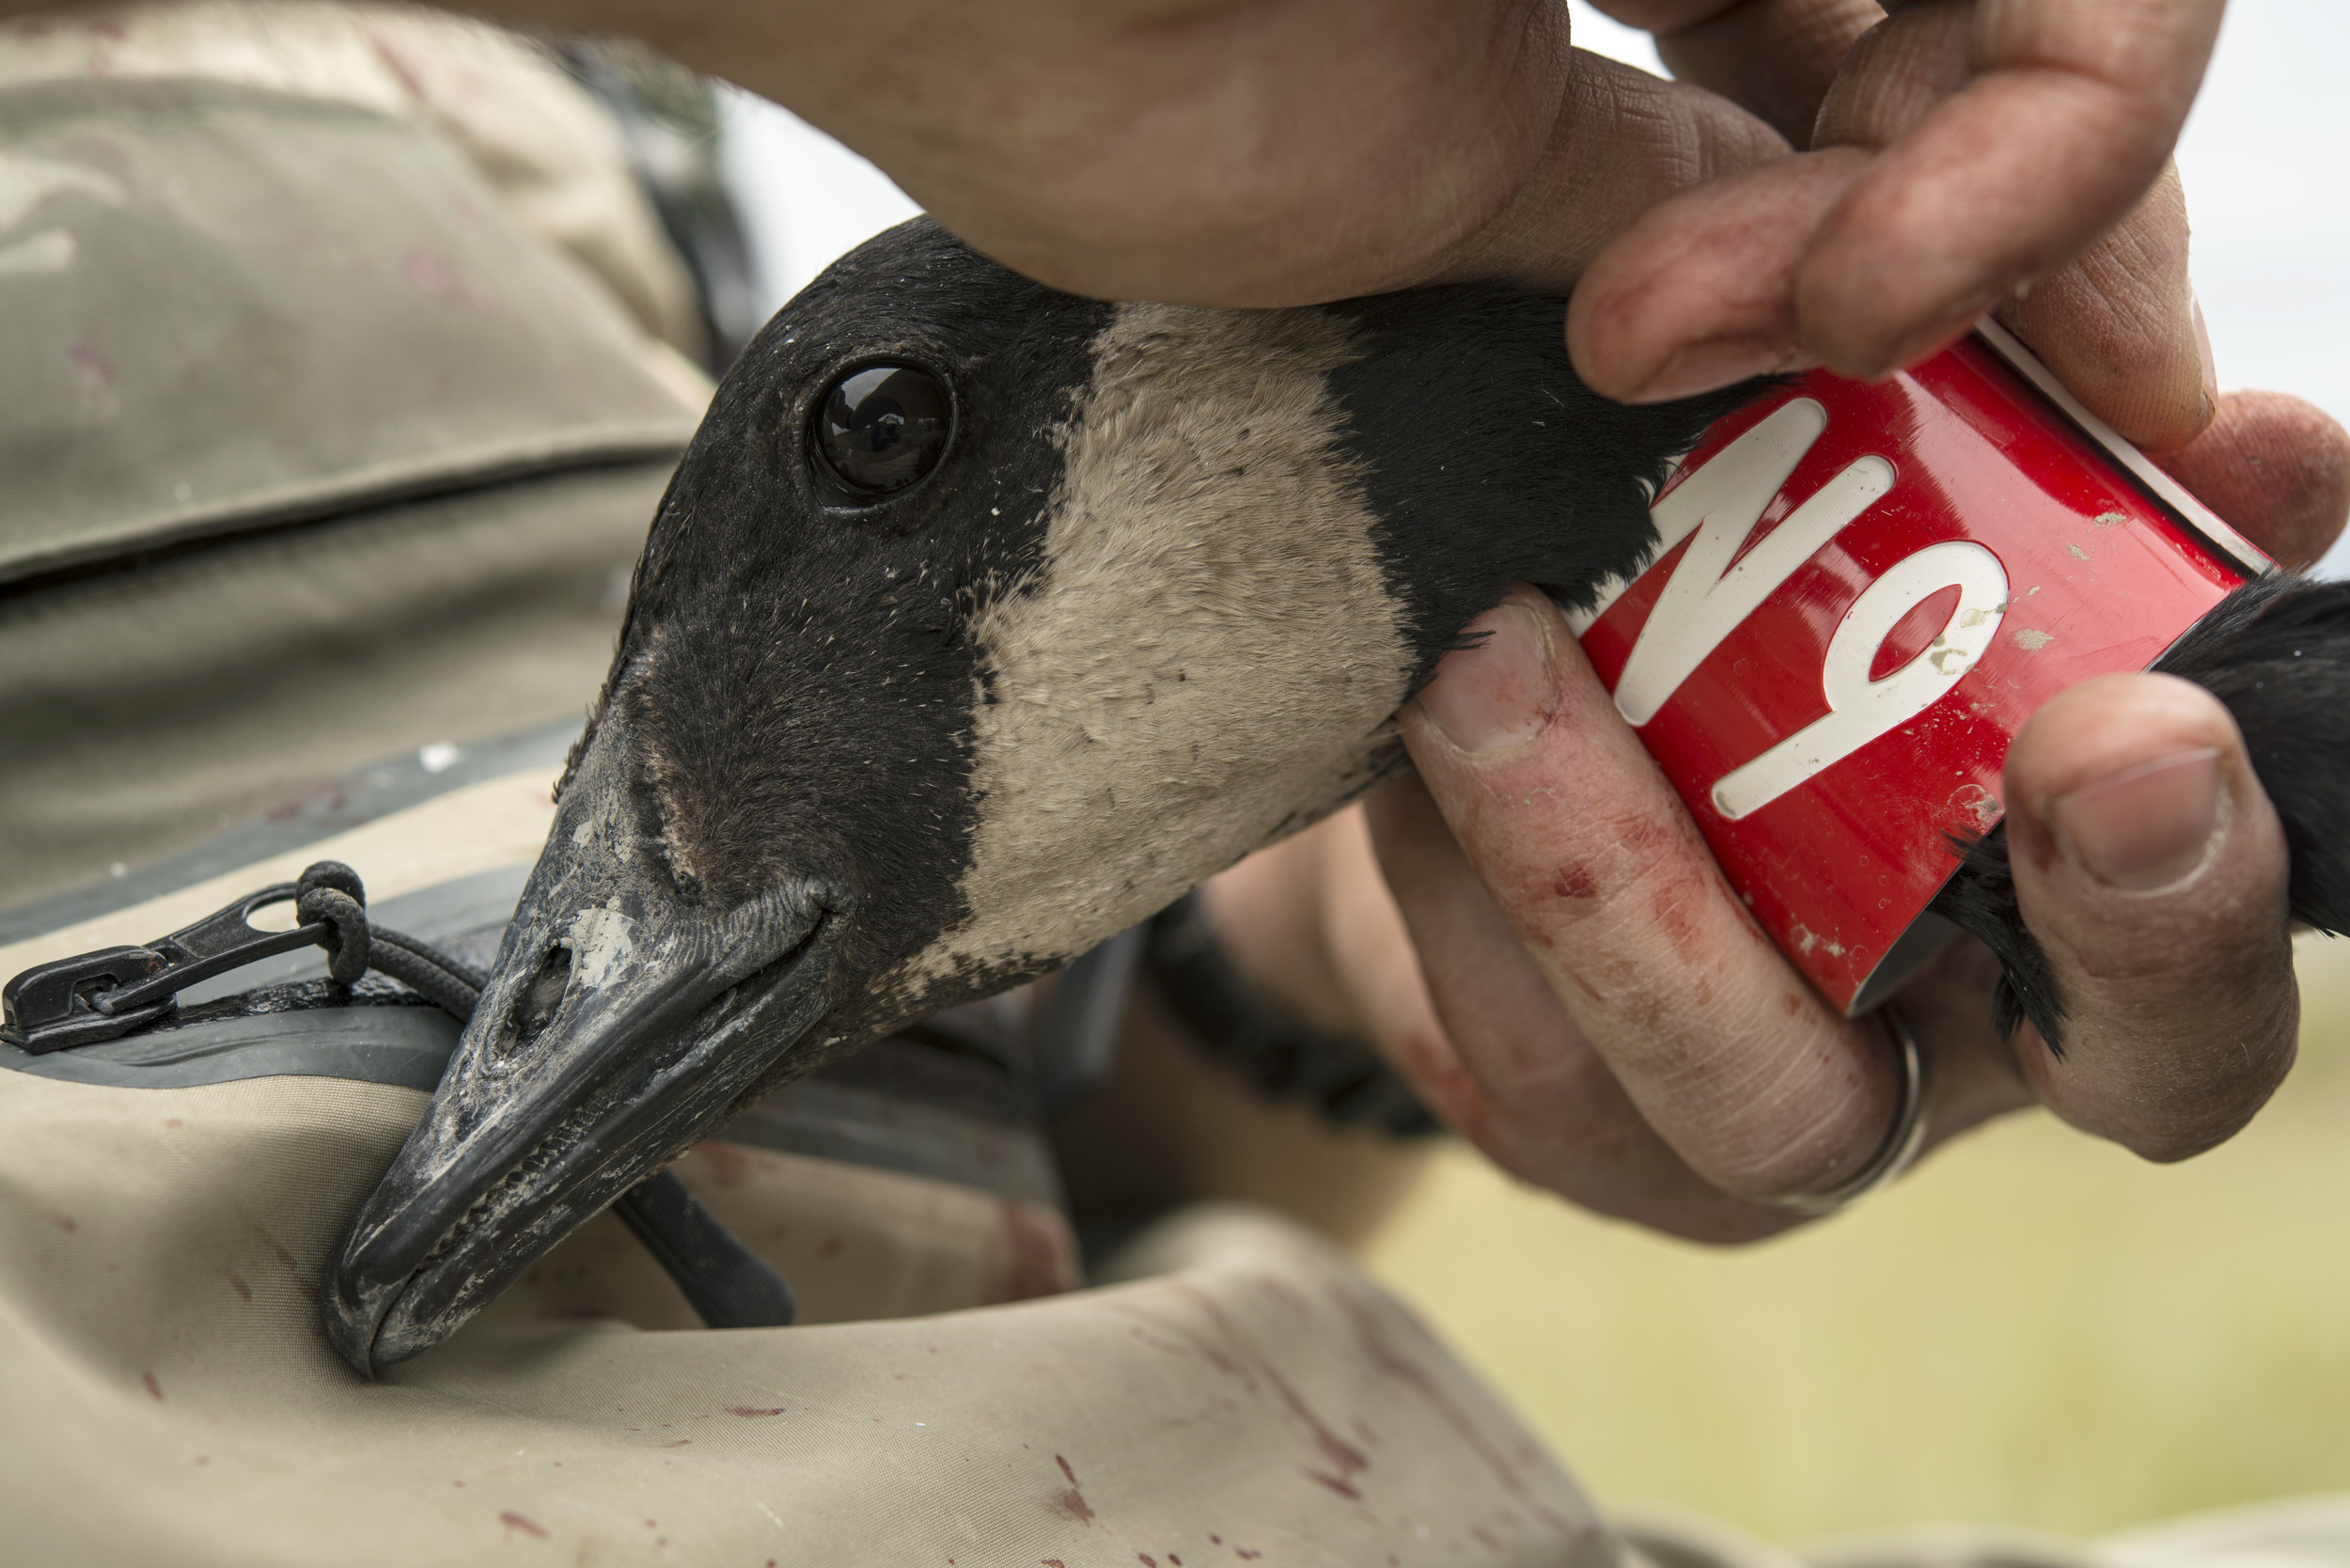 The dusky Canada goose population has decreased in recent years, due to a changing habitat type on the Copper River Delta.   Red collars attached to the birds are used in the wintering season for re-siting the birds.